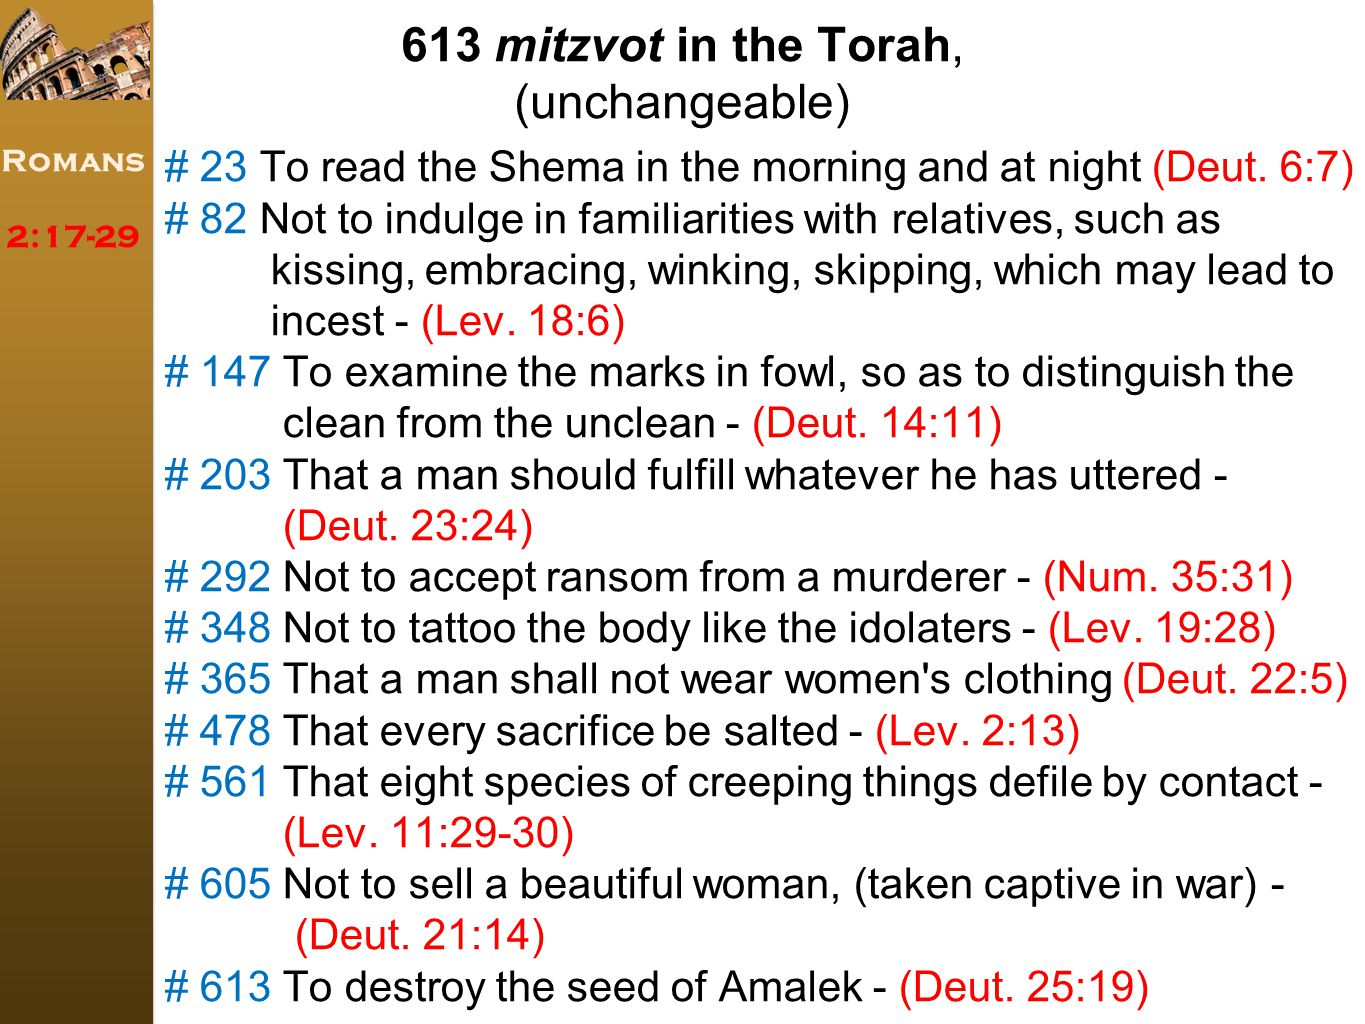 Romans 2:17-29 # 23 To read the Shema in the morning and at night (Deut.